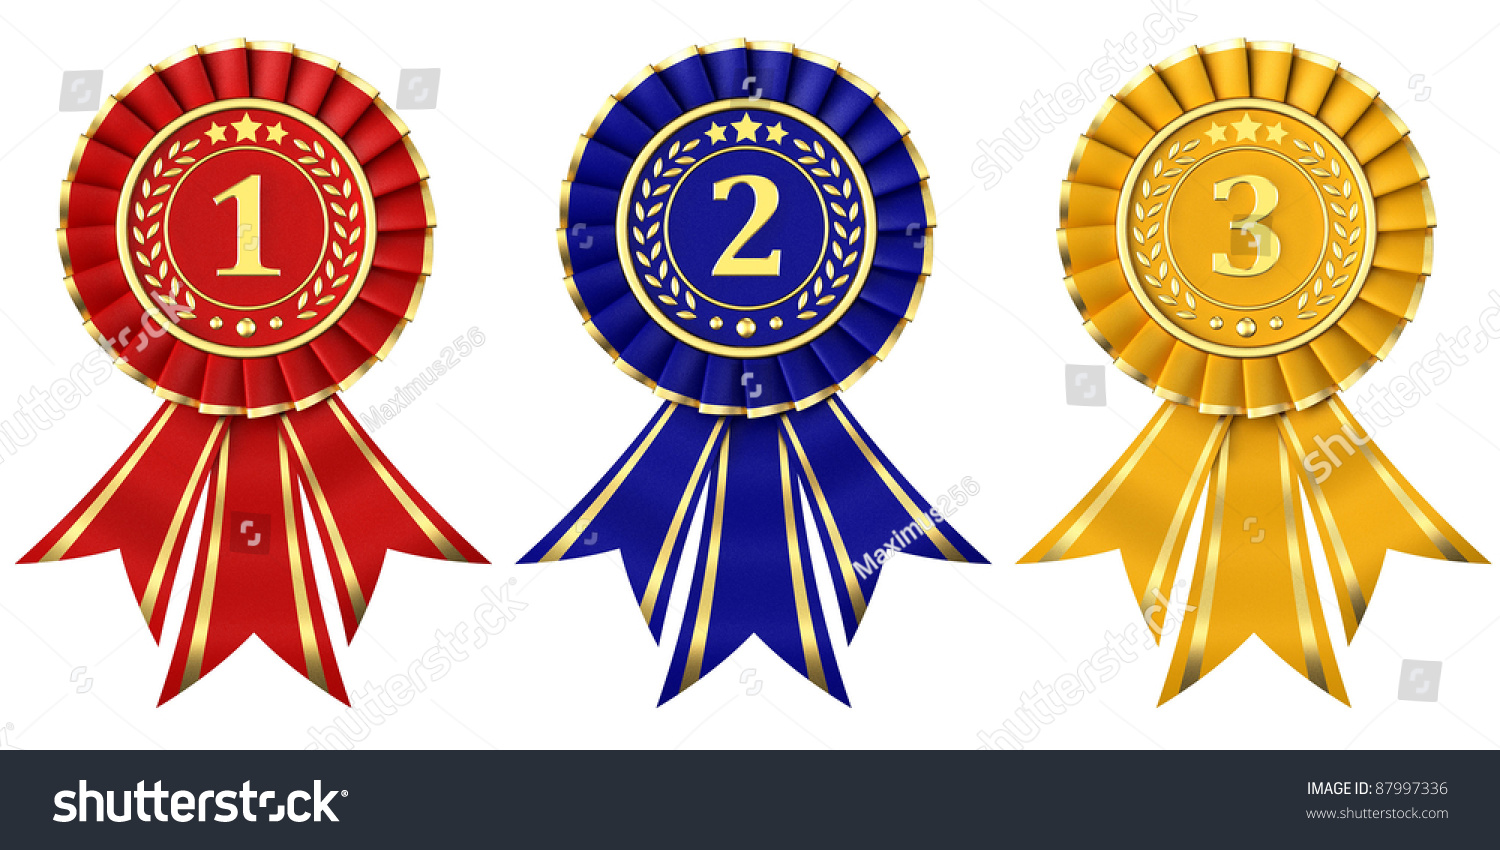 2nd place stock vector illustration royalty free 2nd place clipart - Place First Place Second Place Third Place Award Of